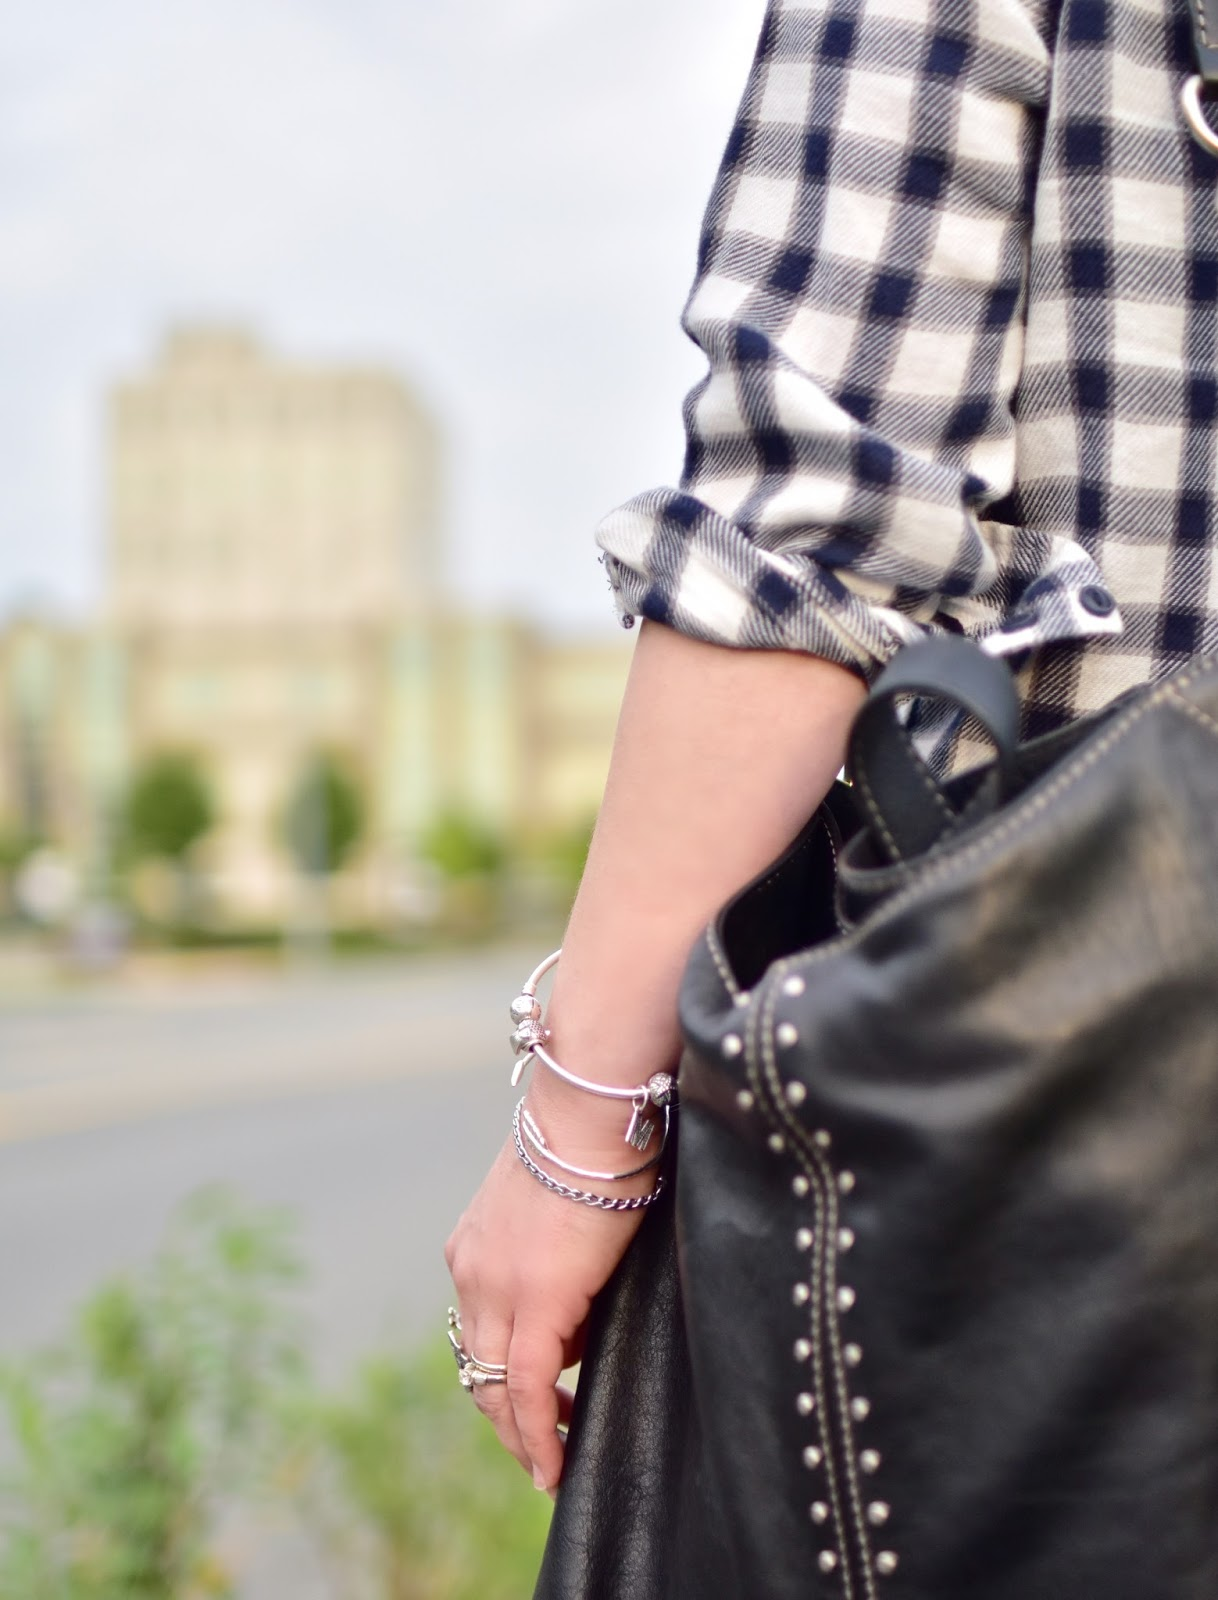 plaid flannel shirt, Michael Kors bag